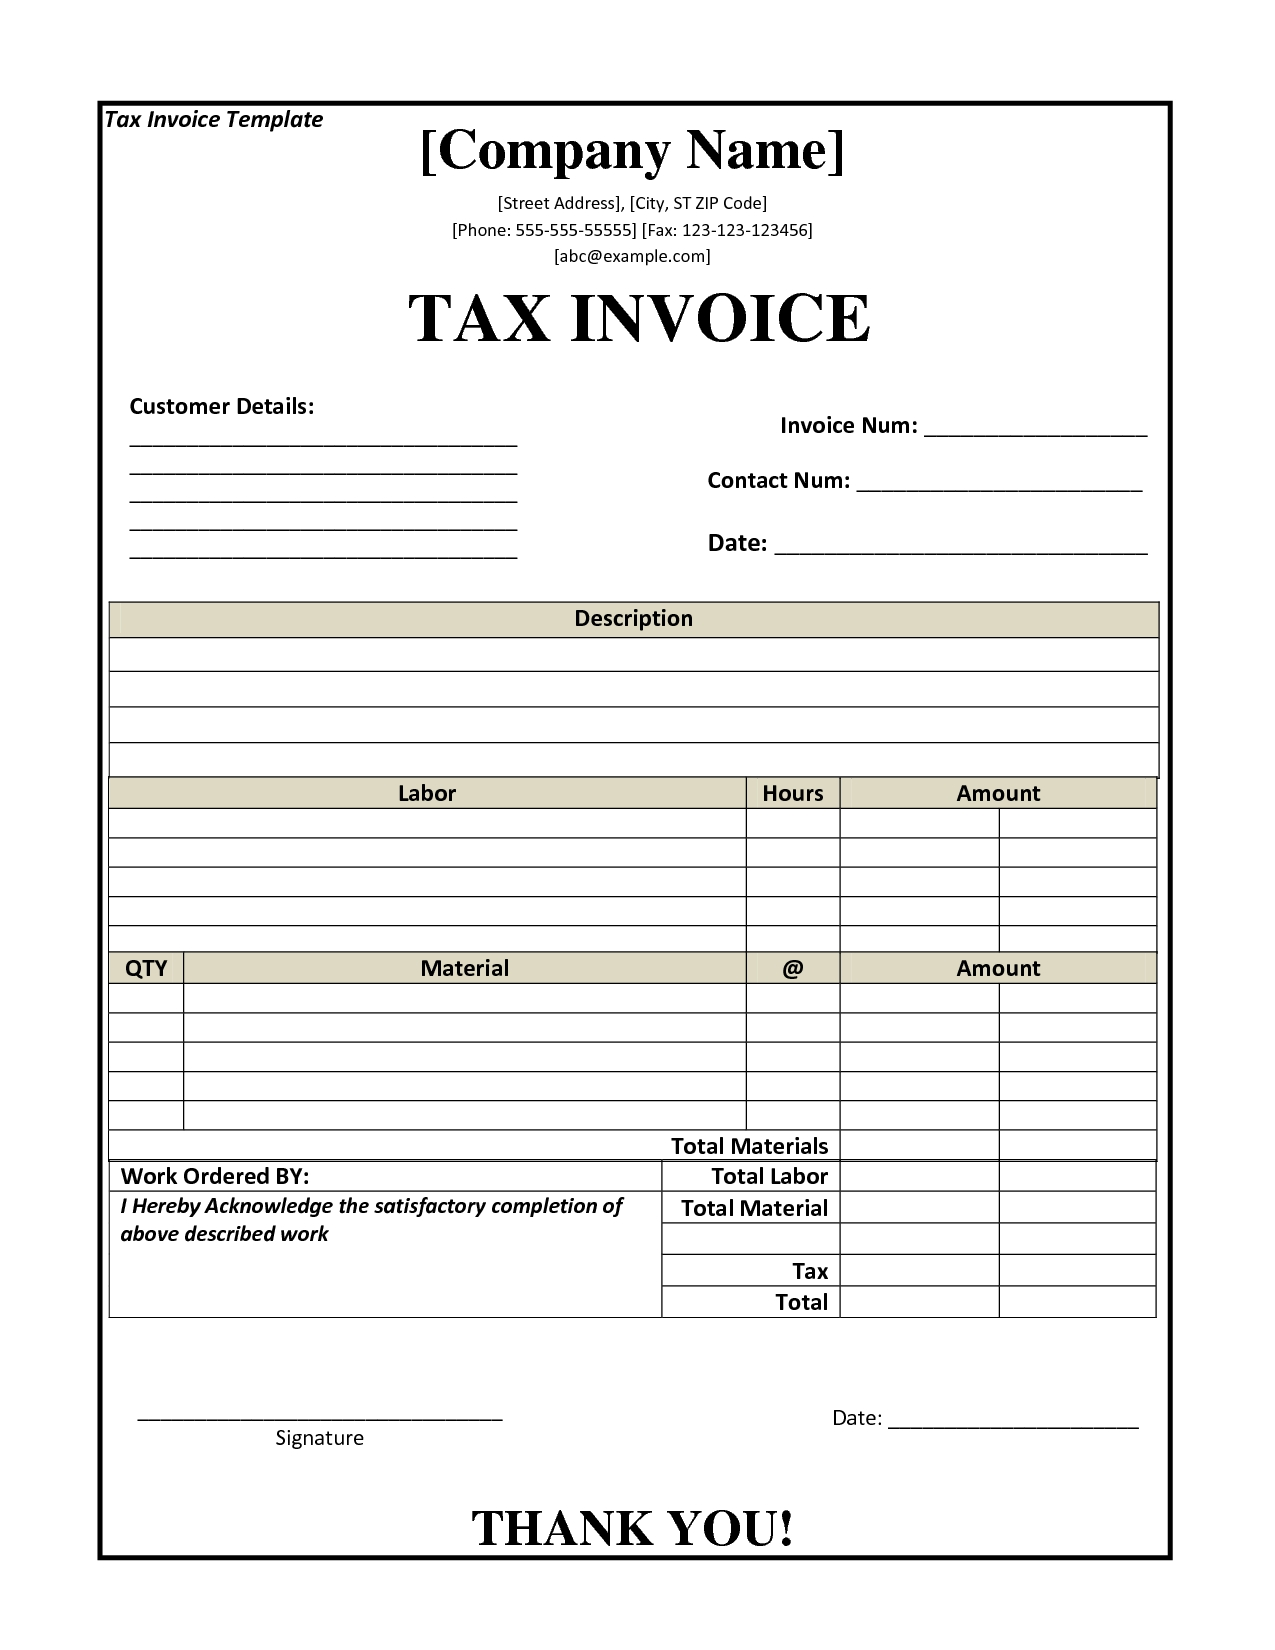 Accounting Template Excel Australia – Invoice Template Excel Australia